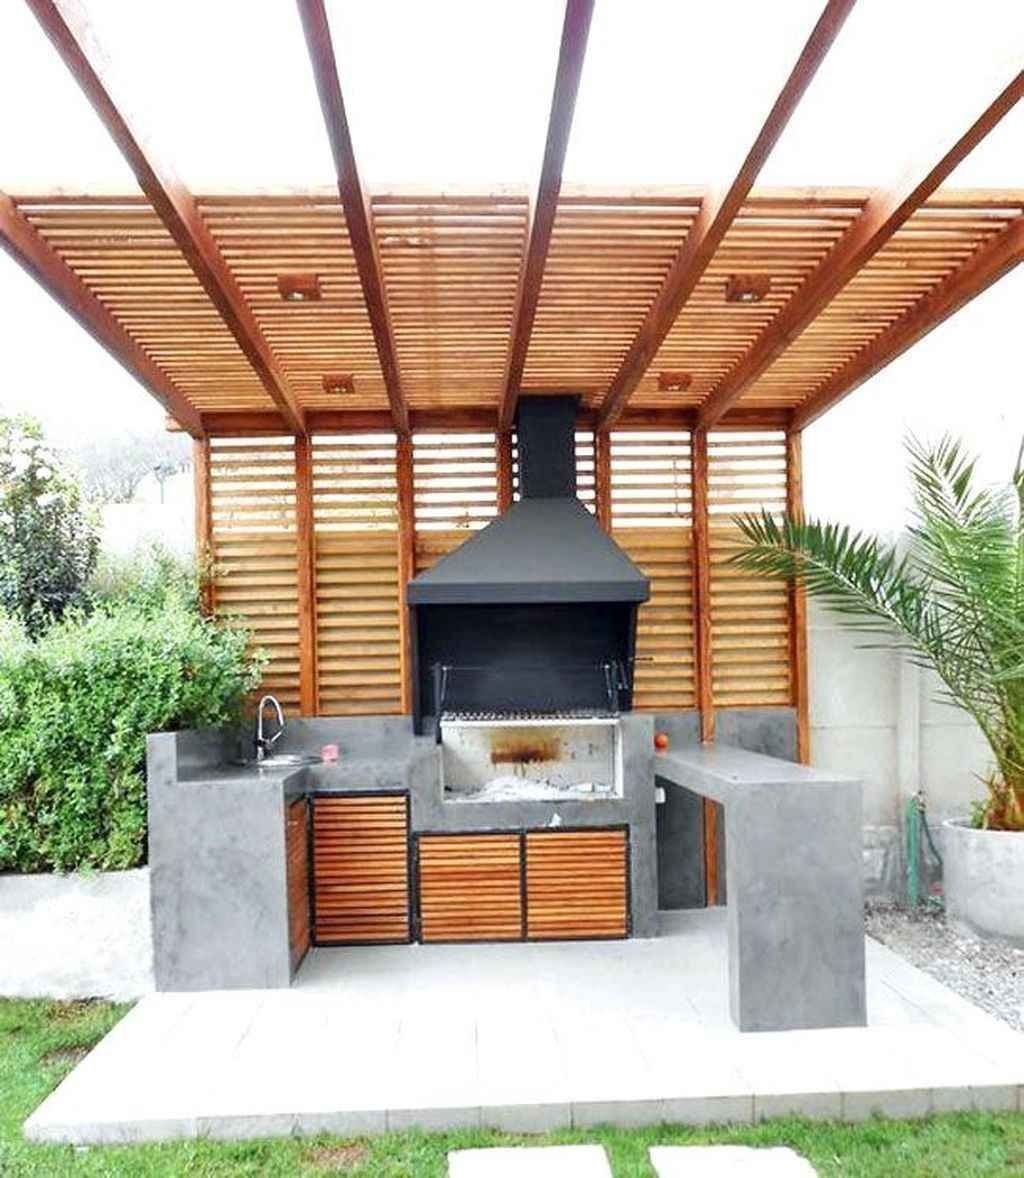 Incredible Kitchen Remodeling Ideas: 95 Incredible Outdoor Kitchen Design Ideas For Summer